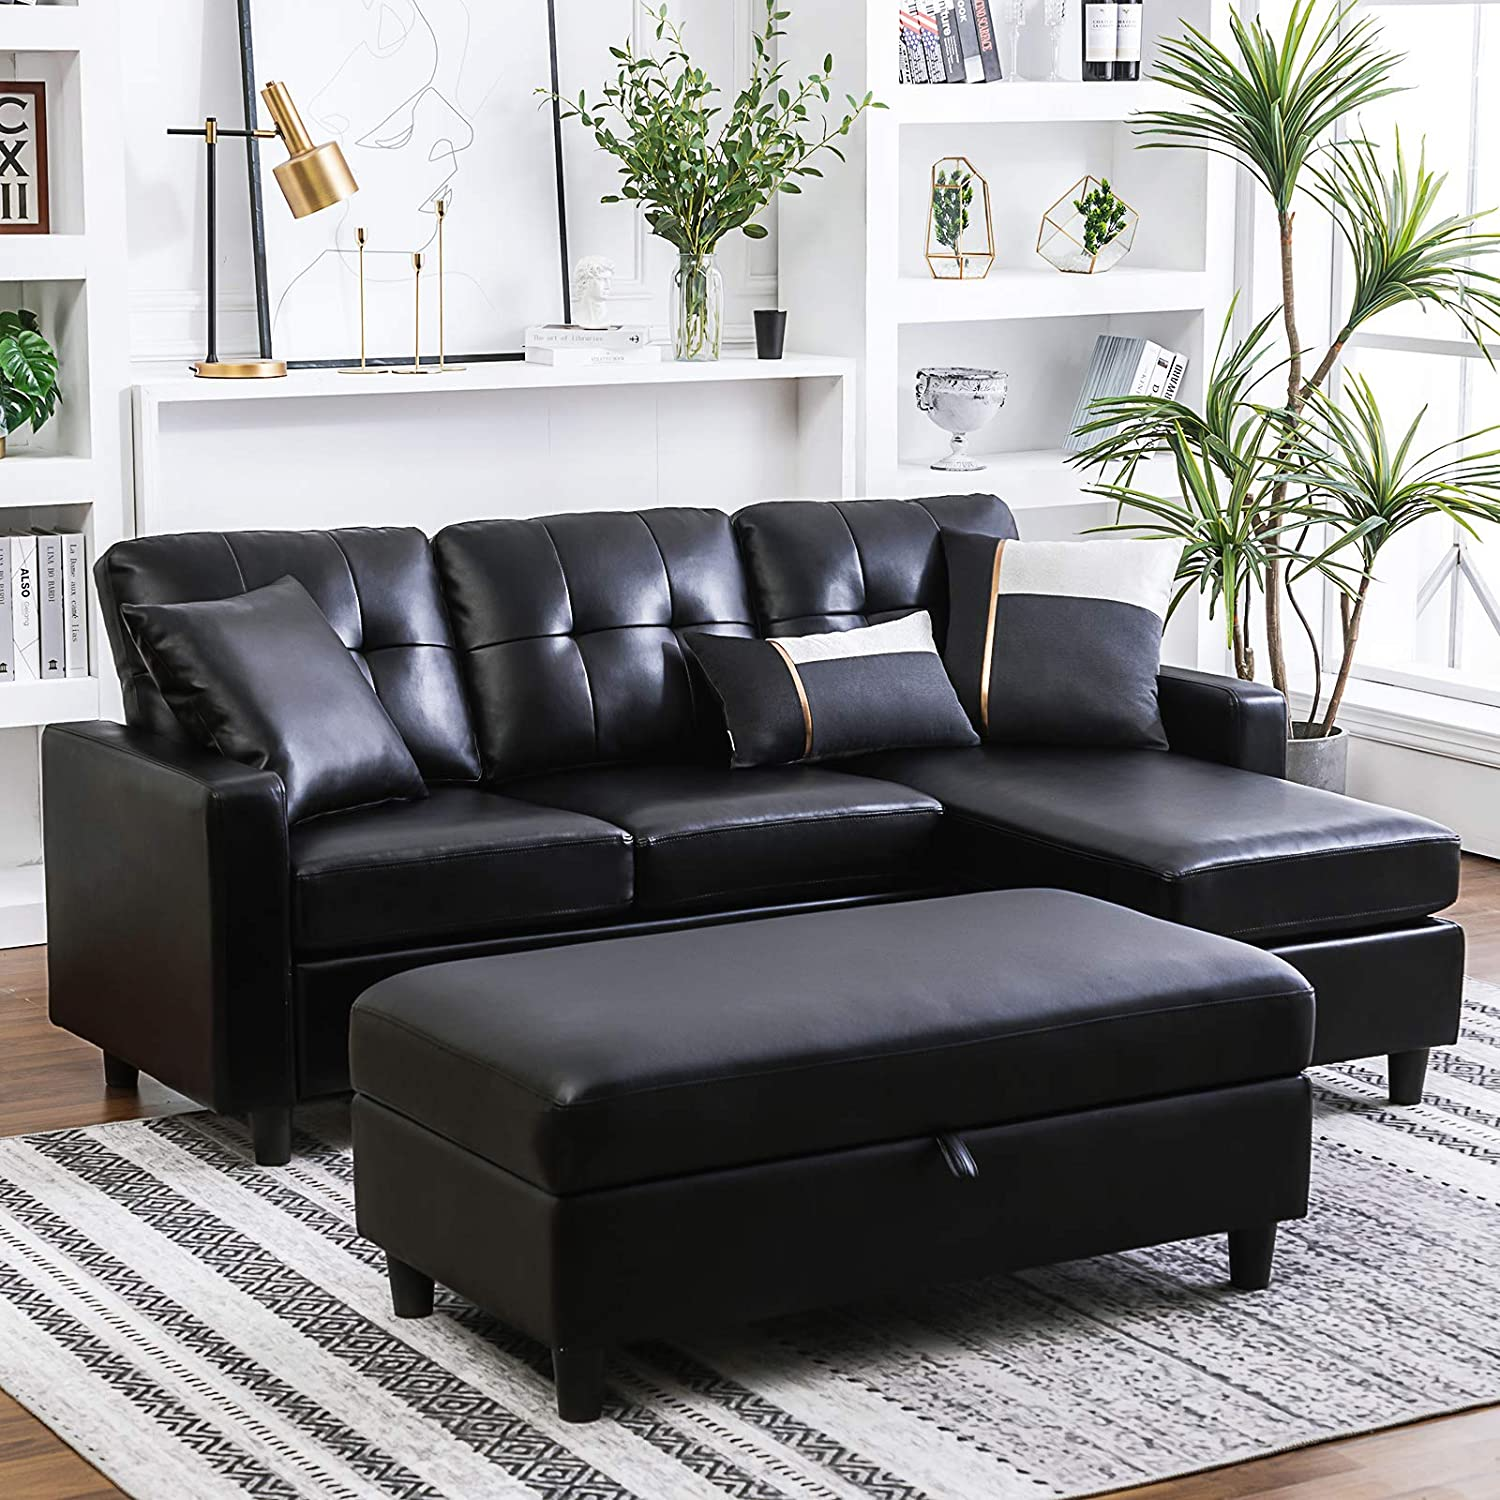 - Amazon.com: HONBAY Convertible Sectional Sofa With Ottoman Modern